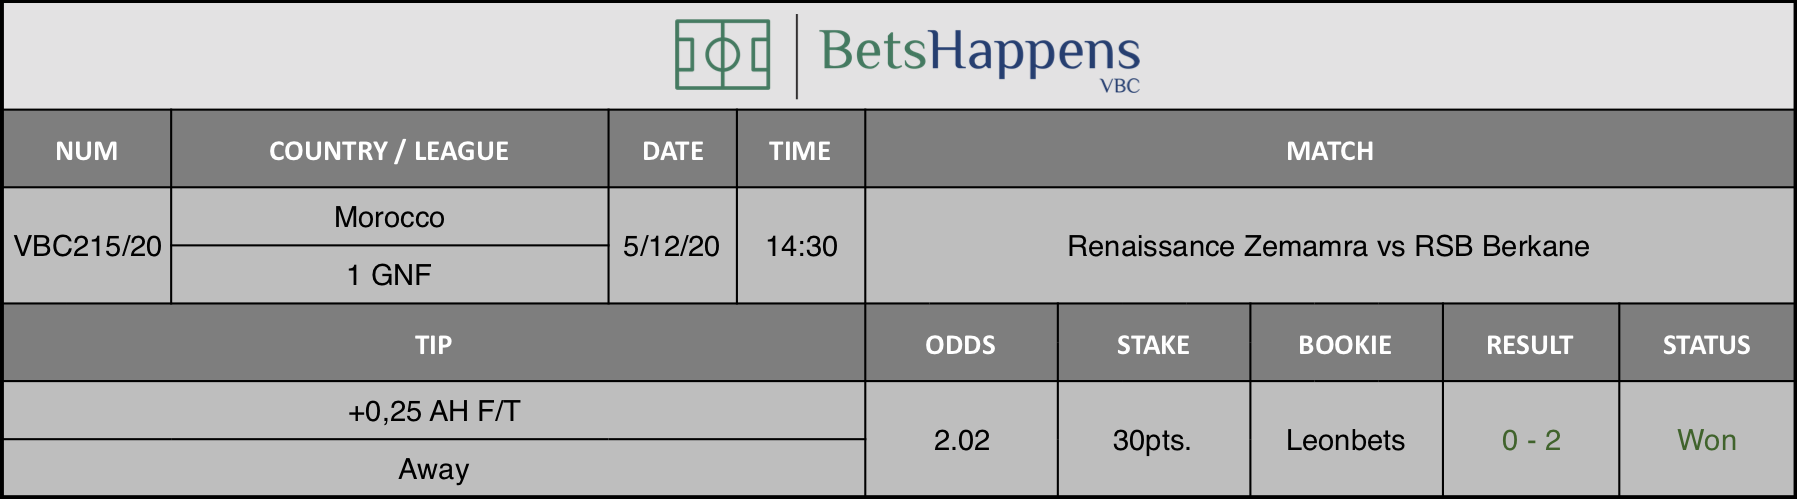 Results of our tip for the Renaissance Zemamra vs RSB Berkane match where +0,25 AH F/T Away is recommended.